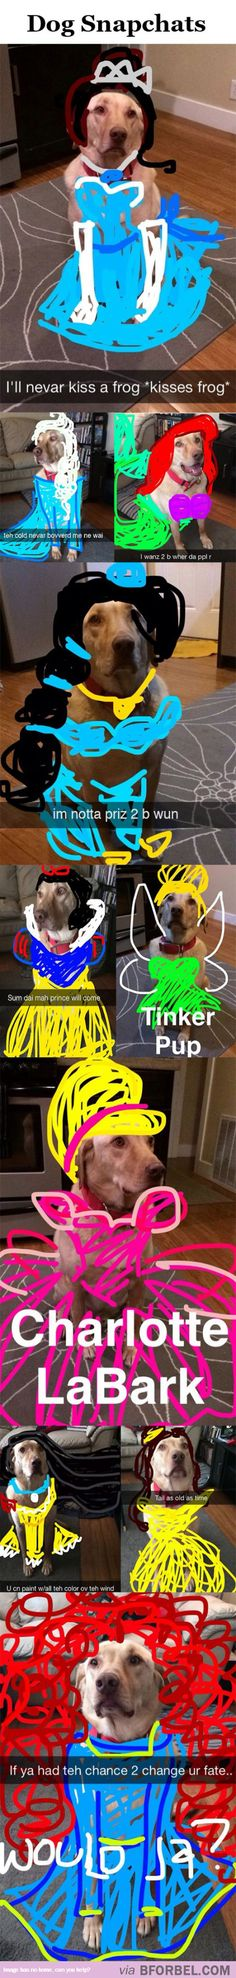 10 Snapchats That Turned This Dog Into A Disney Princess